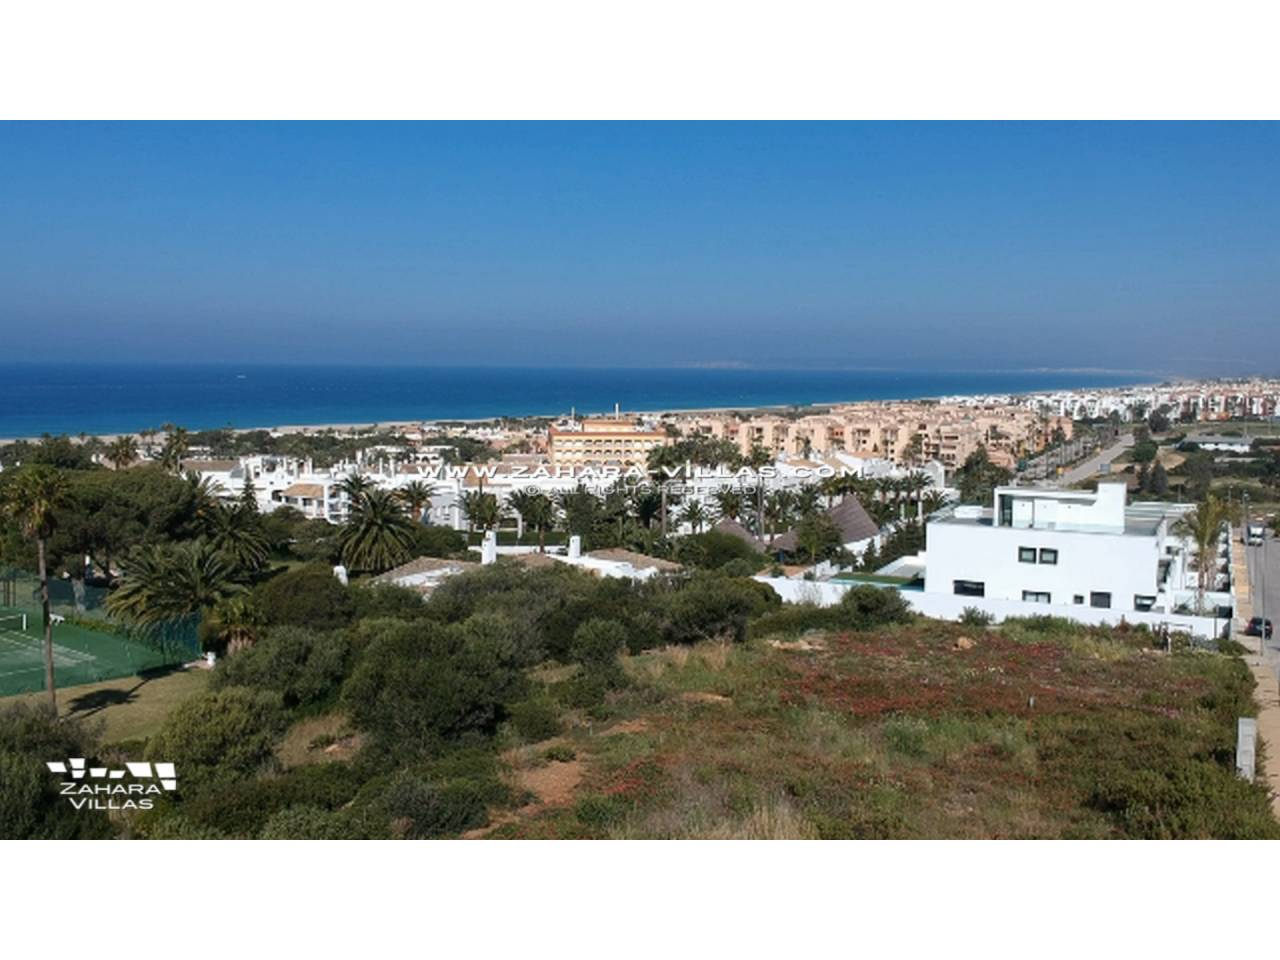 Imagen 2 de Plot in a new residential area overlooking the Sea and the future Golf Course